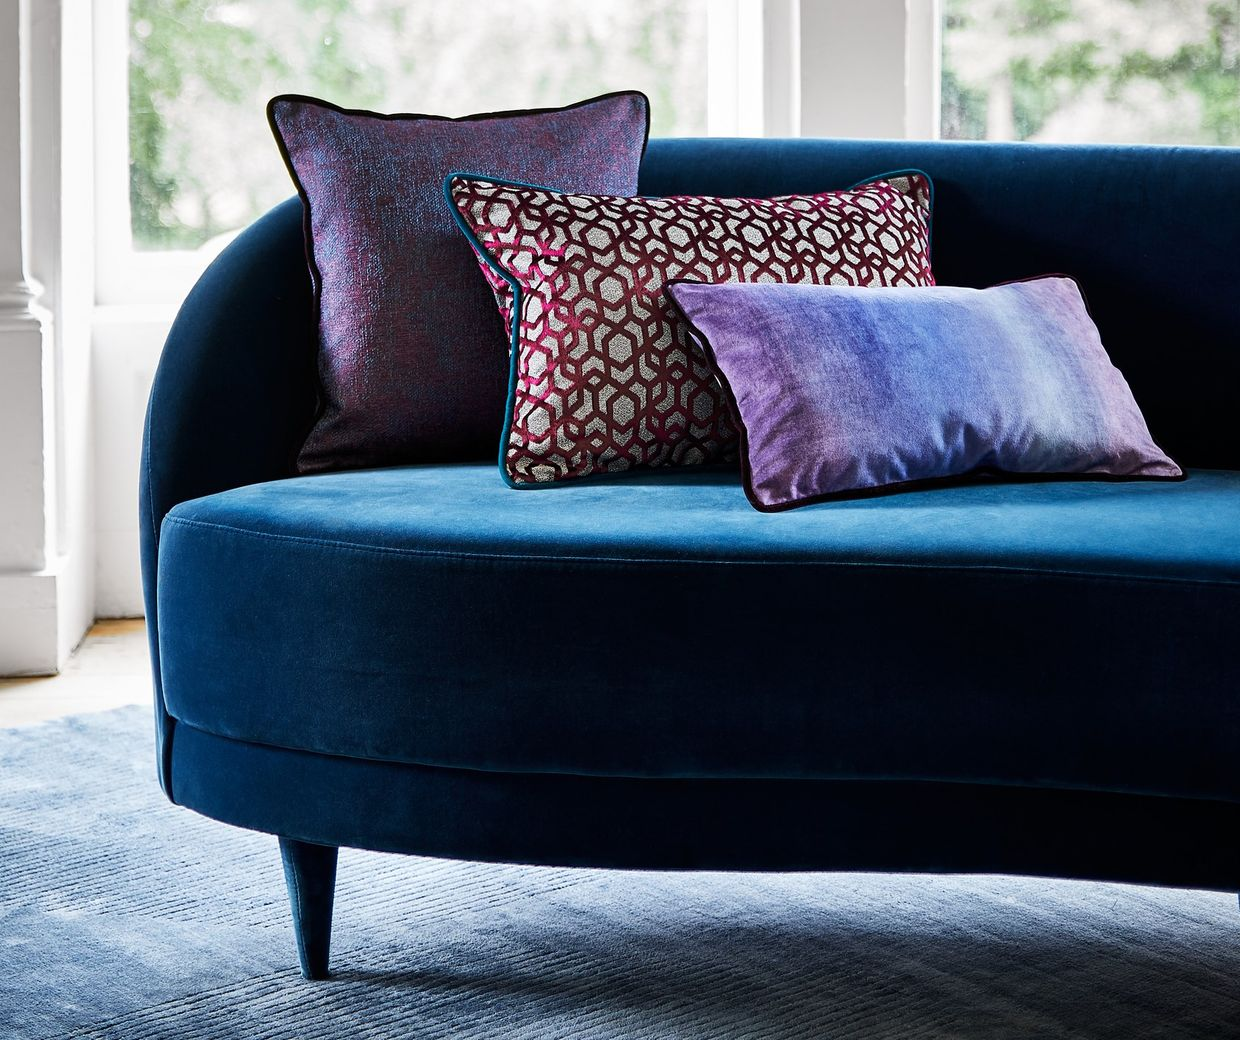 Mercury custom cushion covers in various special fabrics